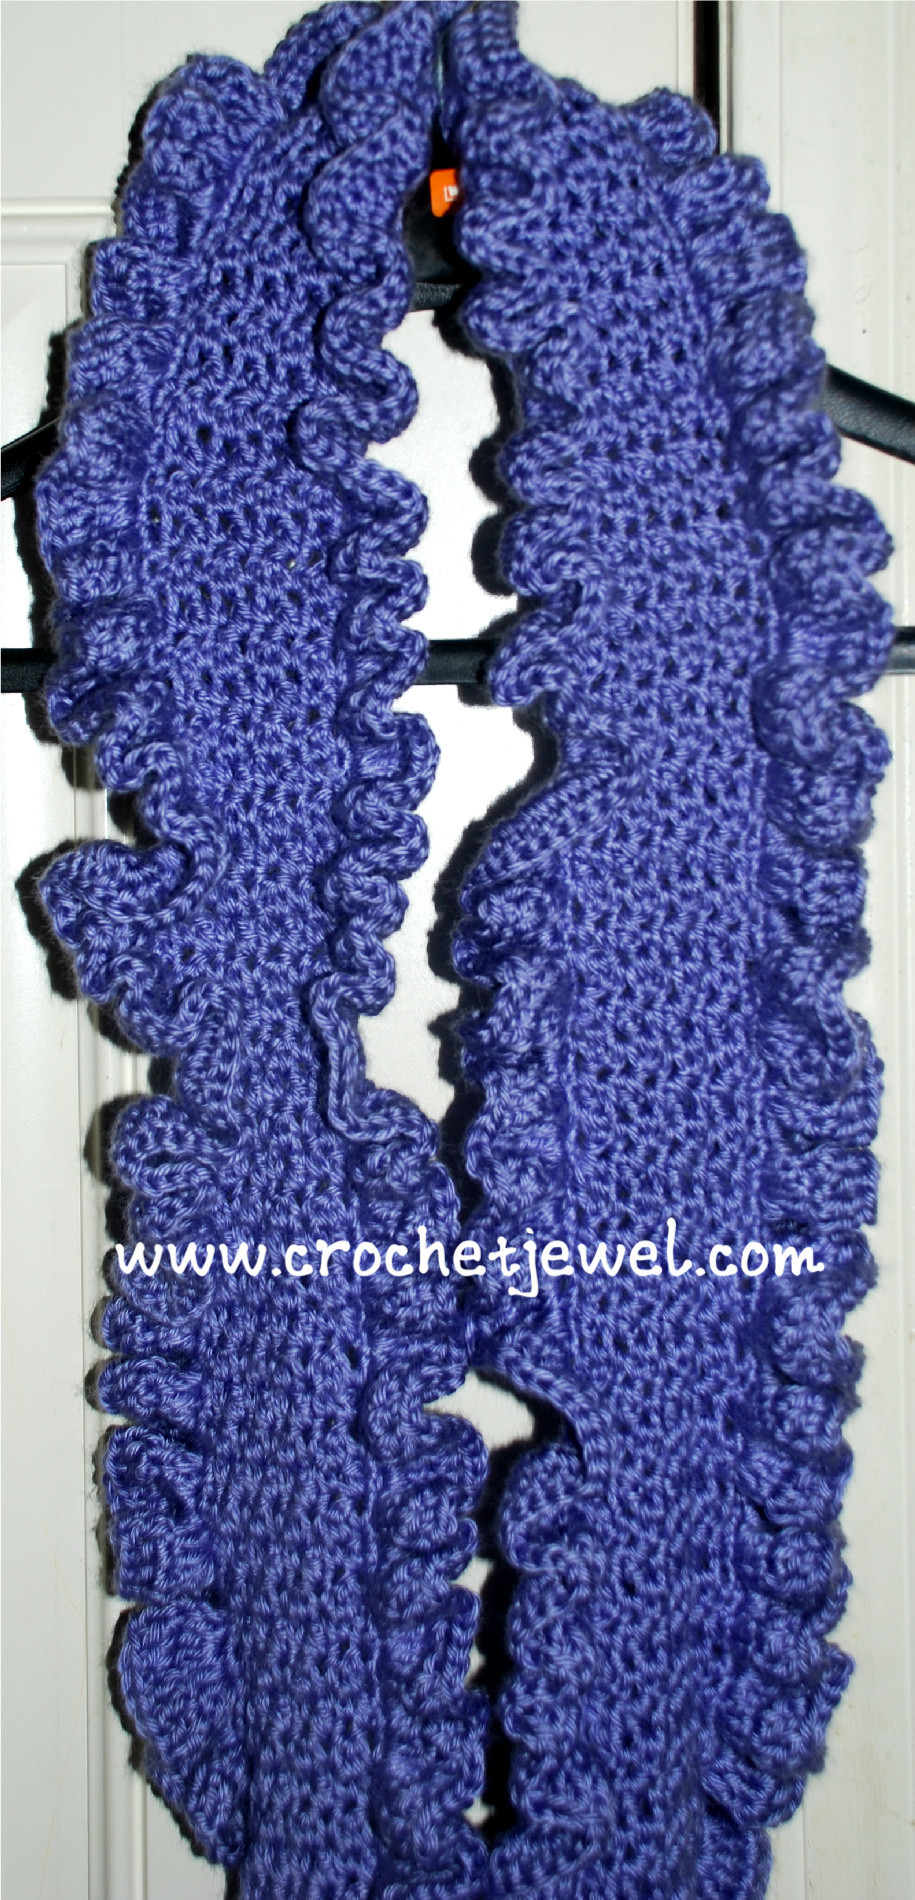 Luxury Crochet Ruffle Scarf Instructions Crochet Ruffle Scarf Of Inspirational Firehawke Hooks and Needles Free Pattern Ruffle Scarf Crochet Ruffle Scarf